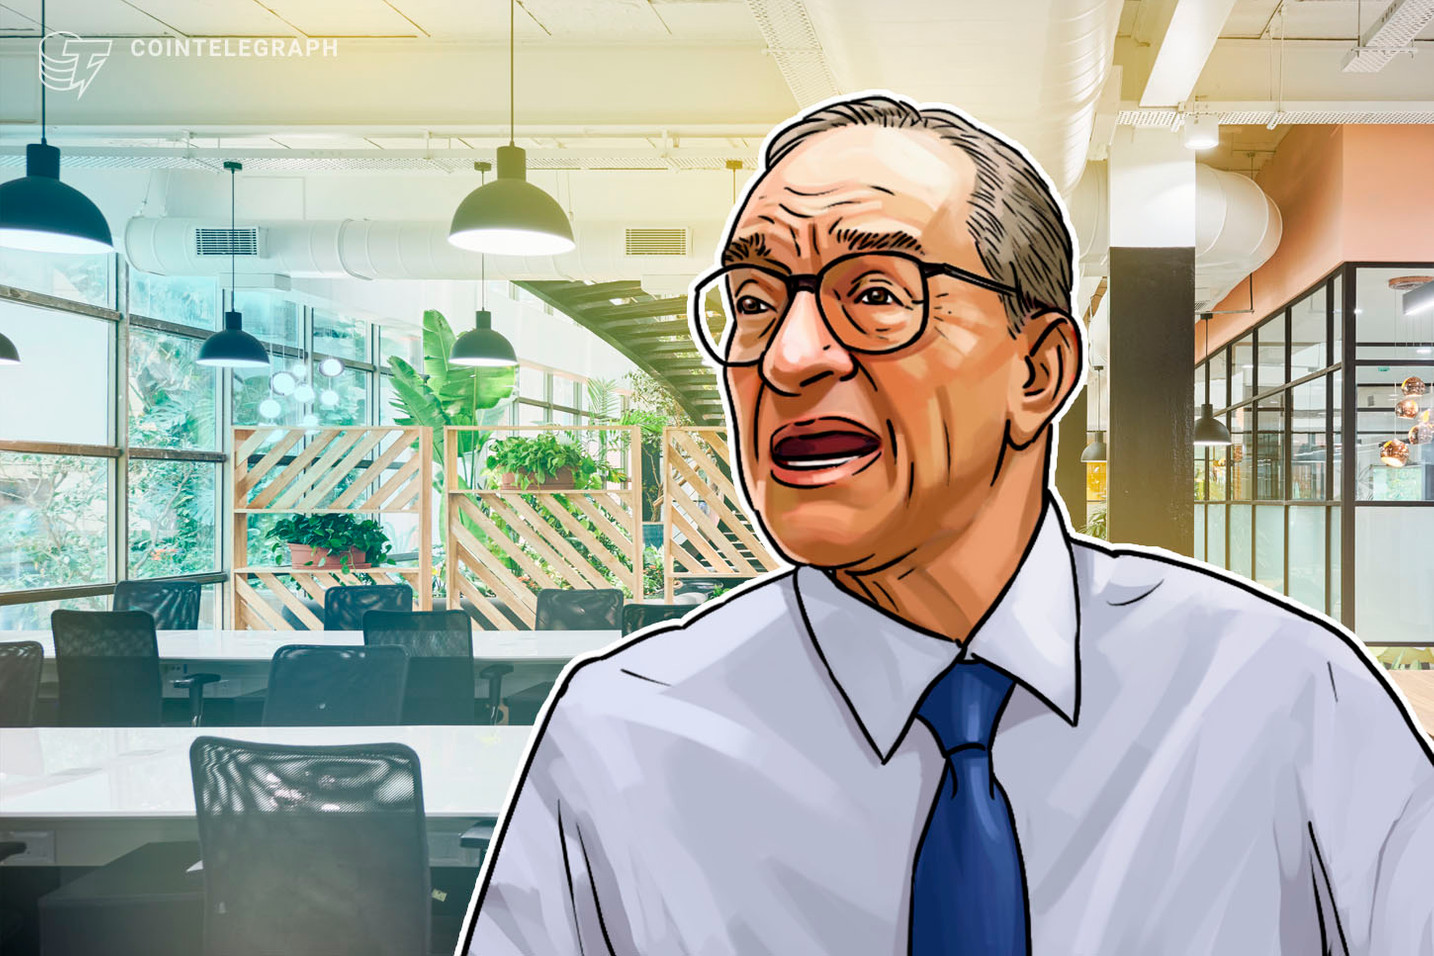 Ex-Fed Chair Greenspan: 'No Point' in Central Bank Digital Currencies